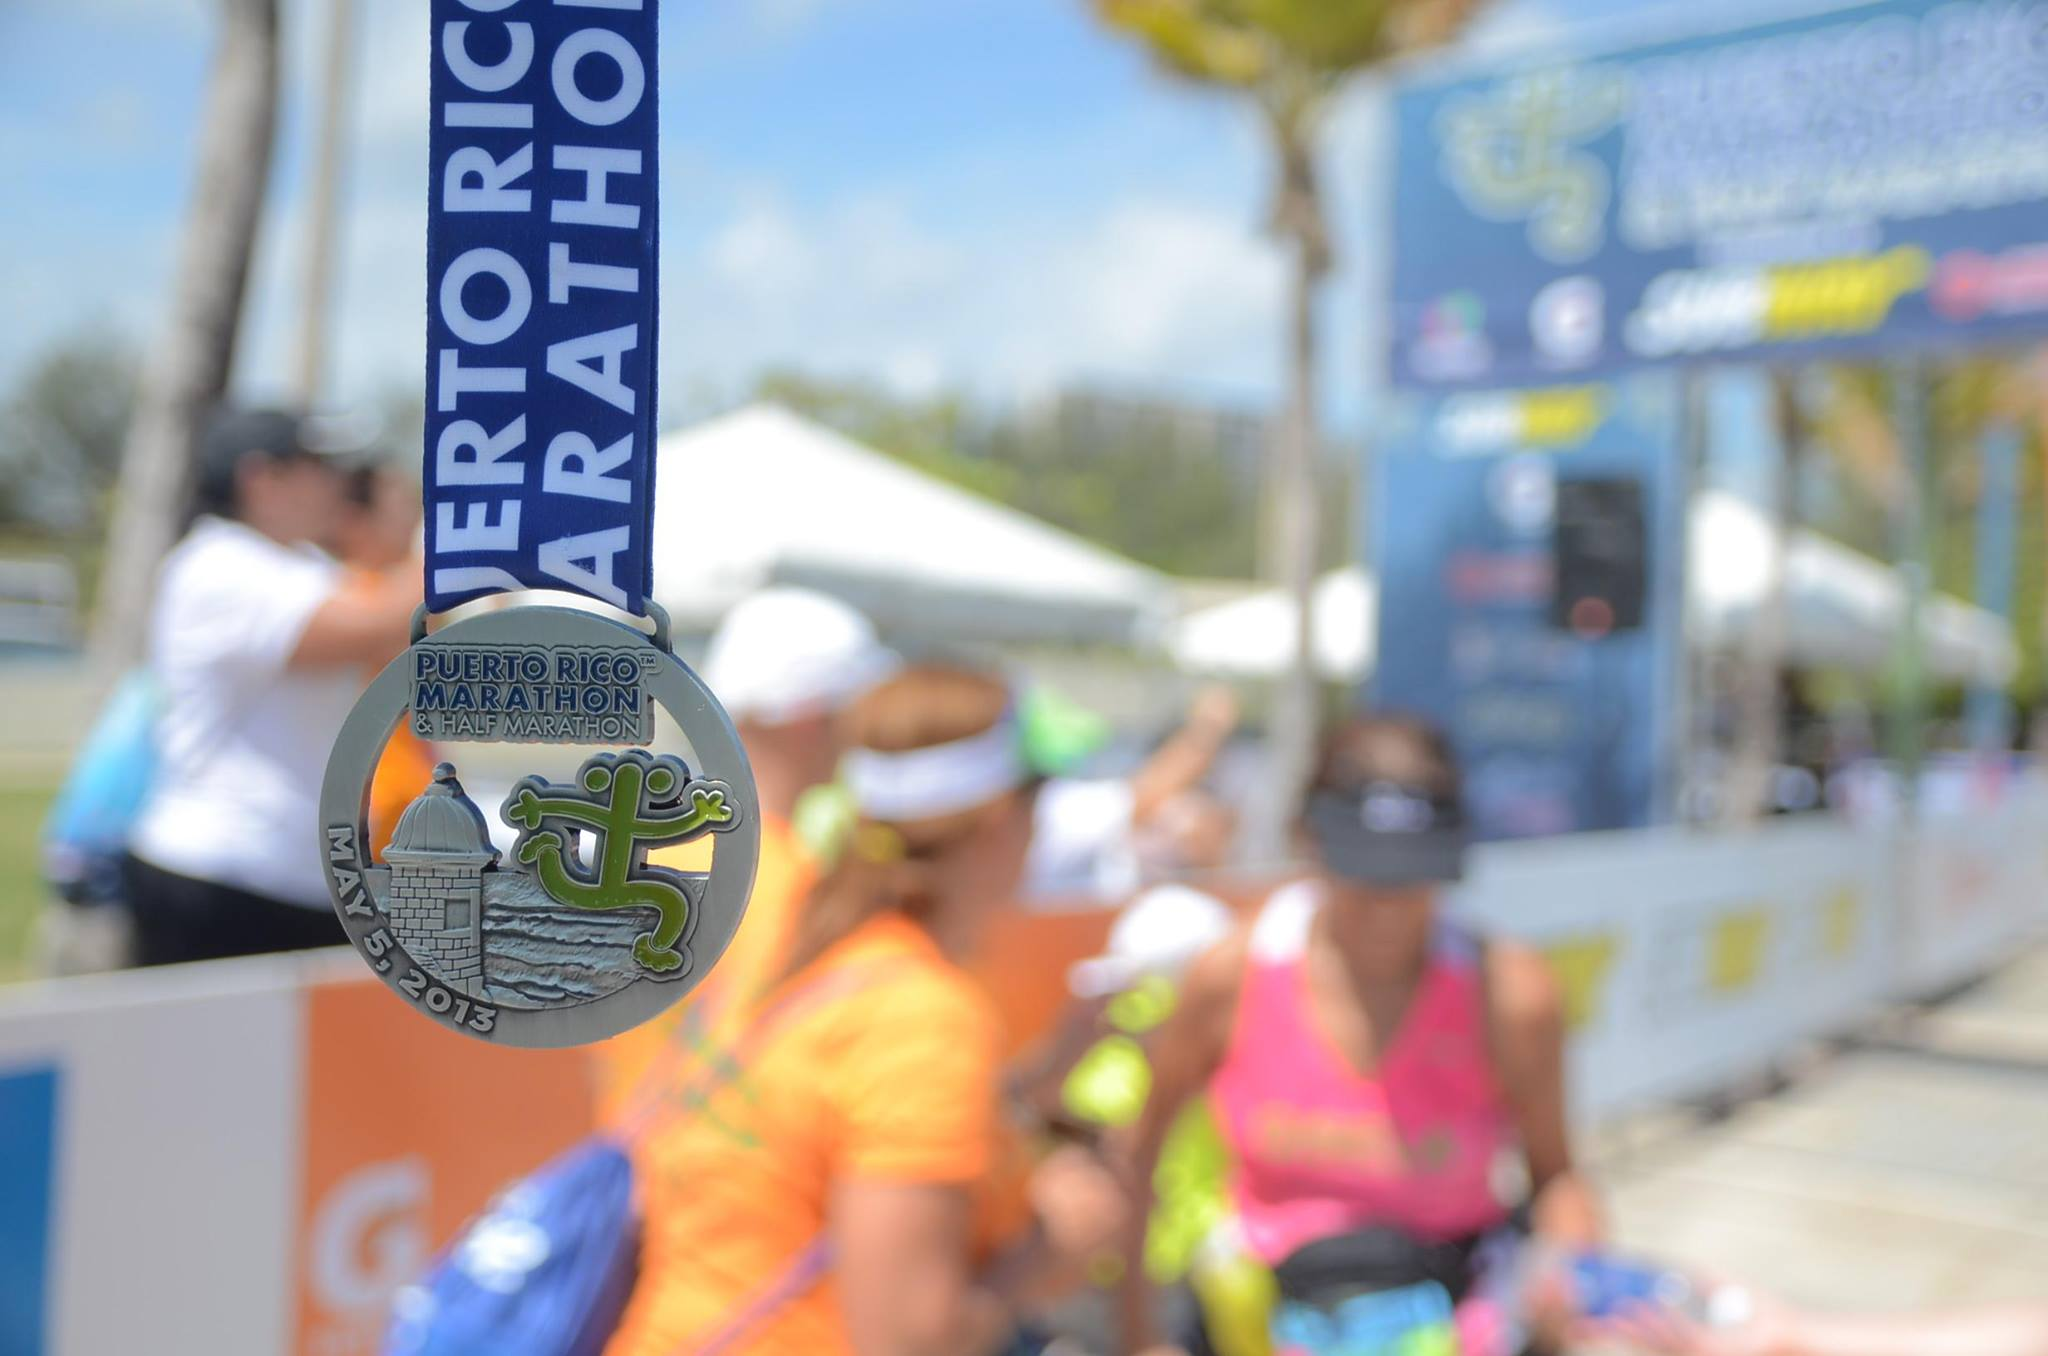 Puerto Rico Marathon. Photo credit